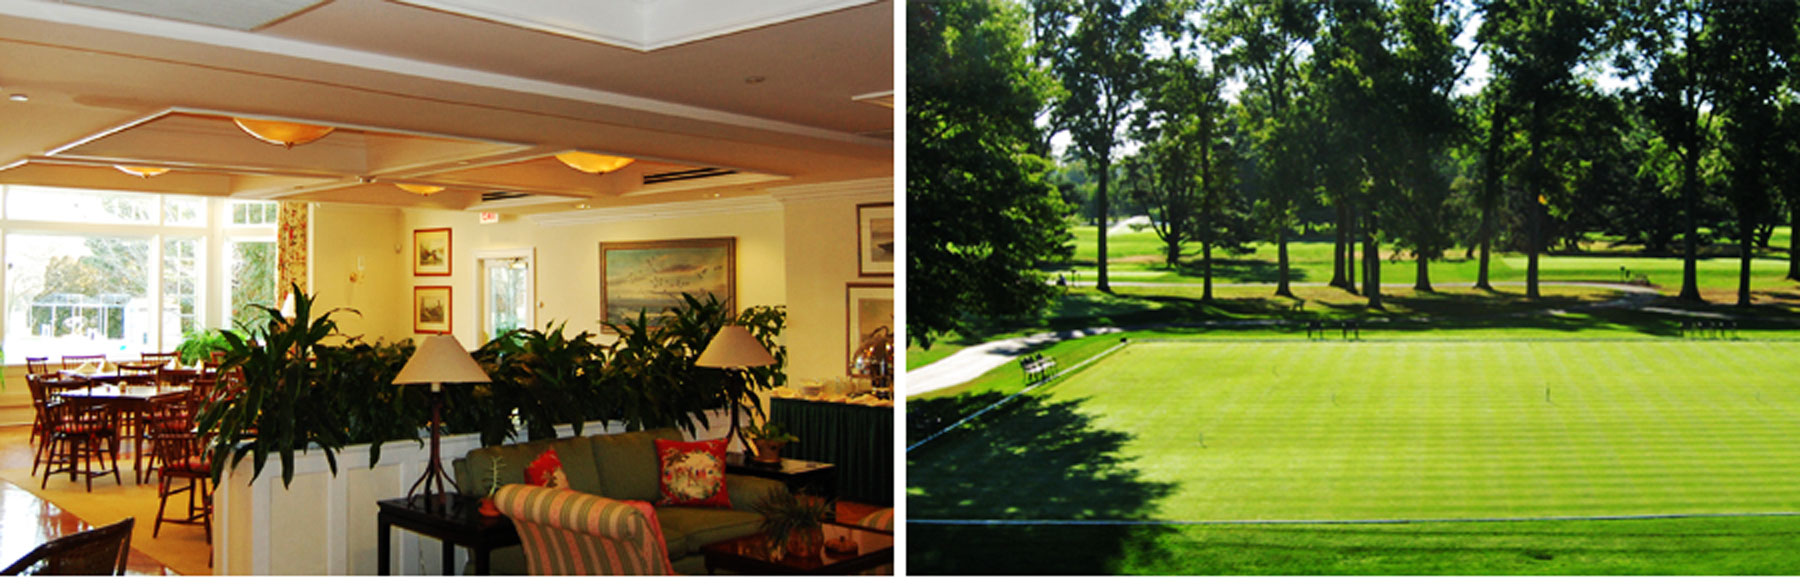 Rumson Country Club, Rumson, New Jersey